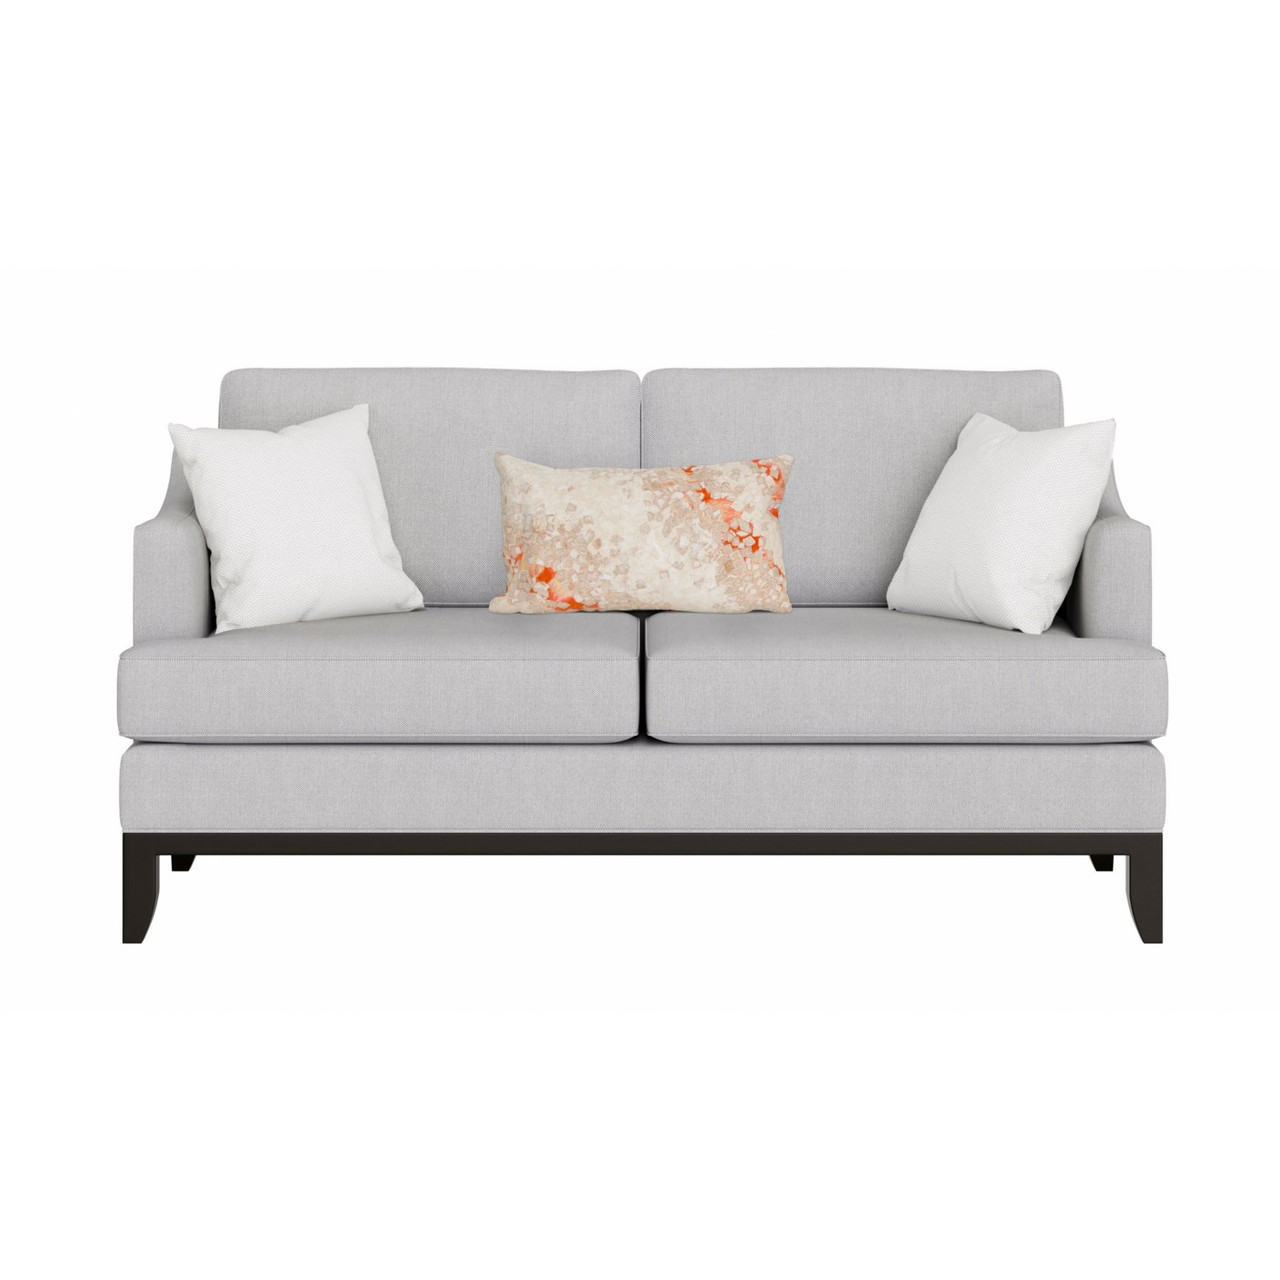 Visions II Warm Elements Indoor/Outdoor Throw Pillows - 2 Sizes Avail